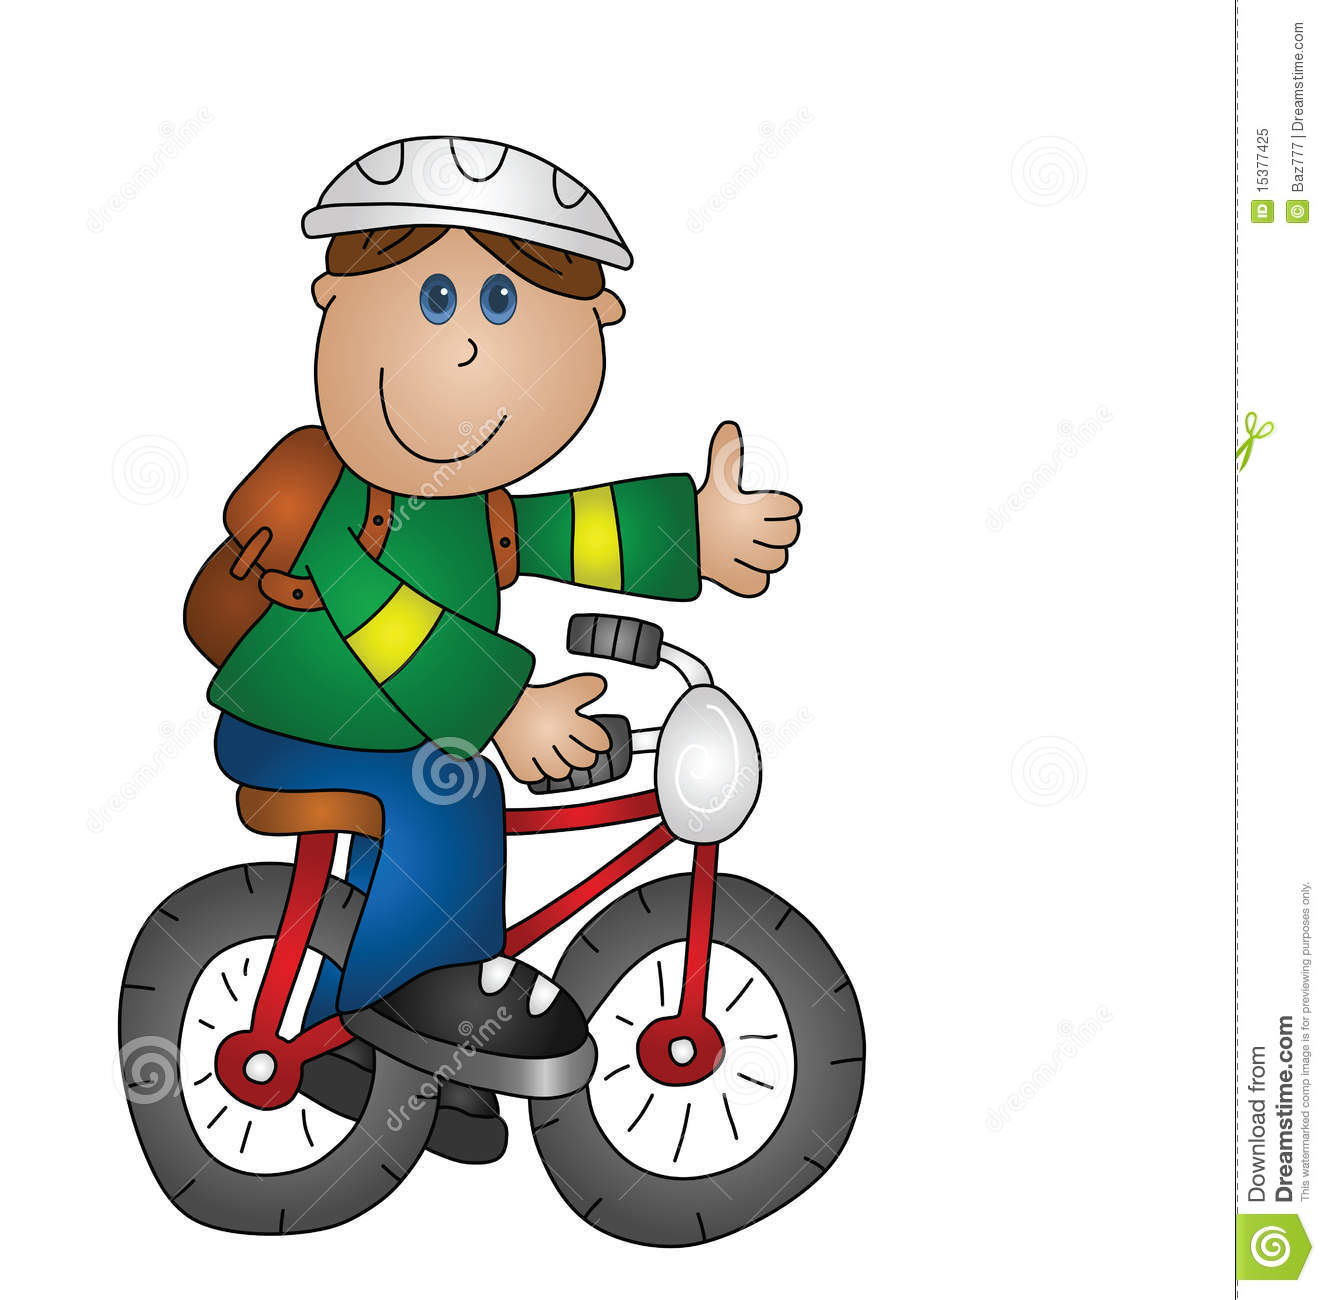 Boy On A Bicycle Royalty Free Stock Photo - Image: 15377425